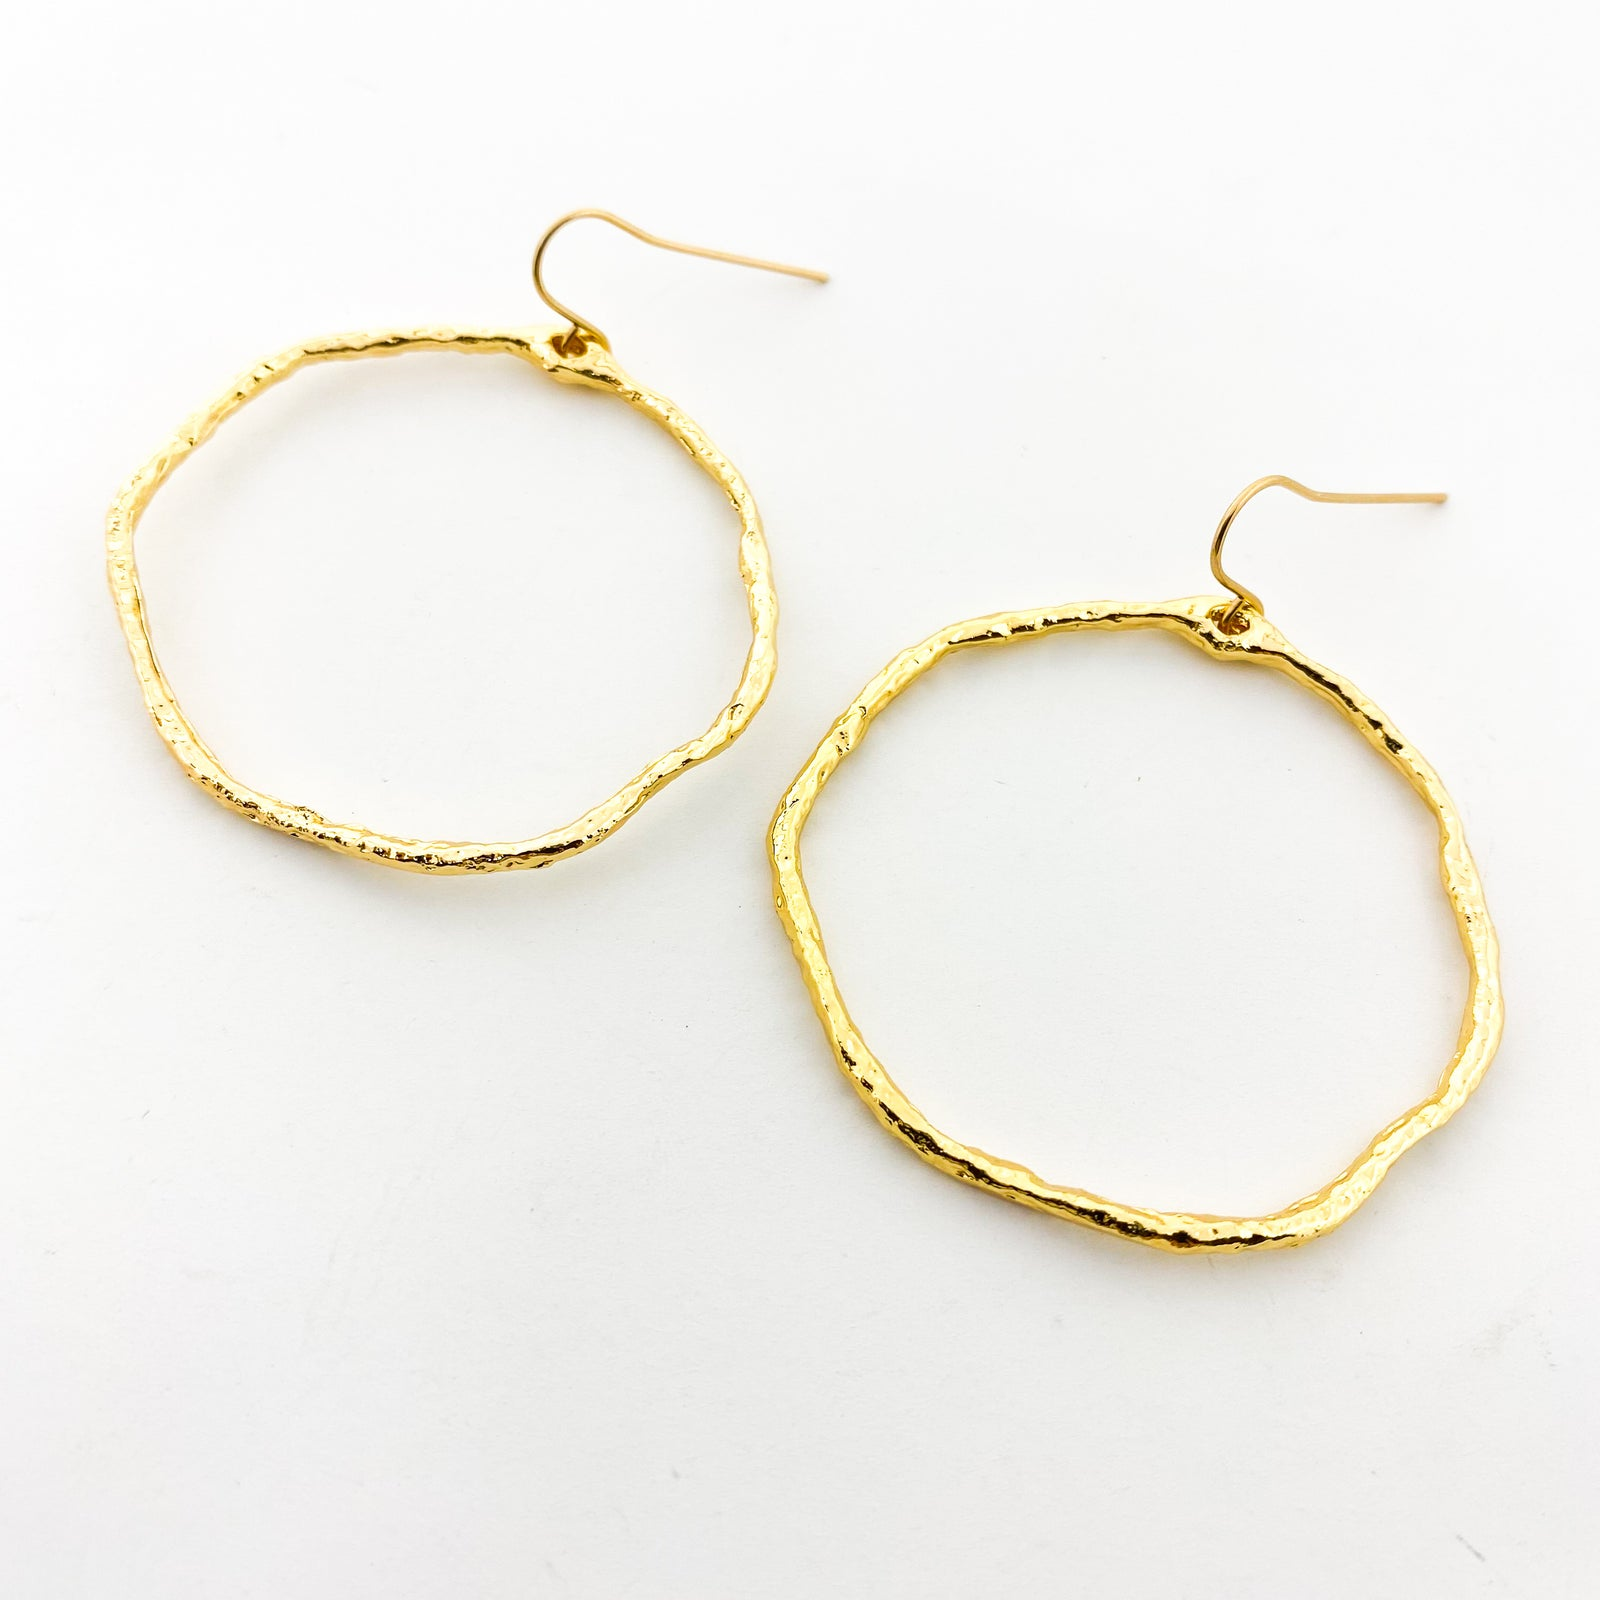 LARGE TWISTED HAMMERED HOOP EARRINGS | 14K GOLD-FILLED